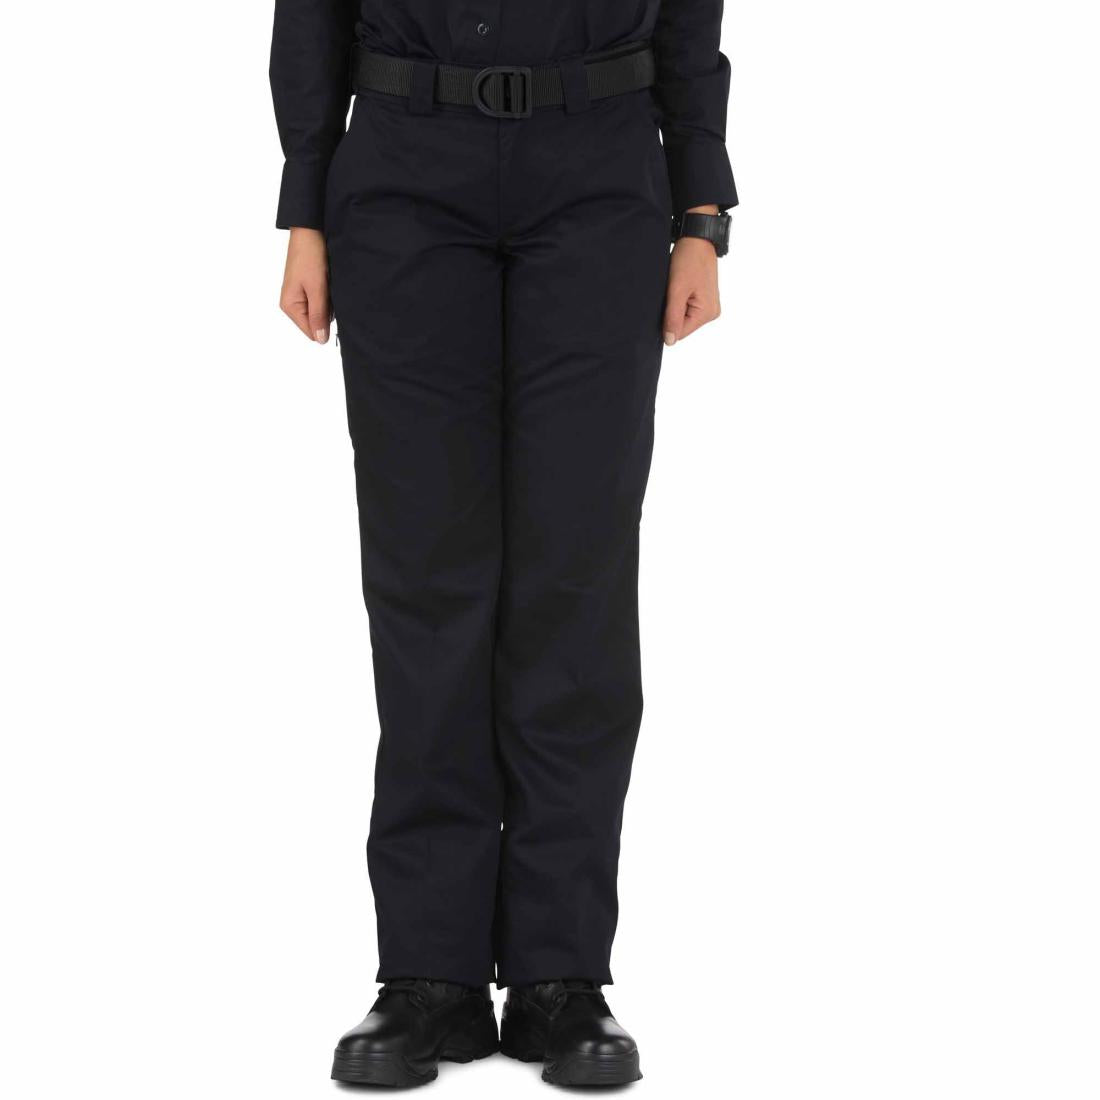 5.11 Tactical 64304 Women's Twill PDU Class - A Pant Midnight Navy - 2